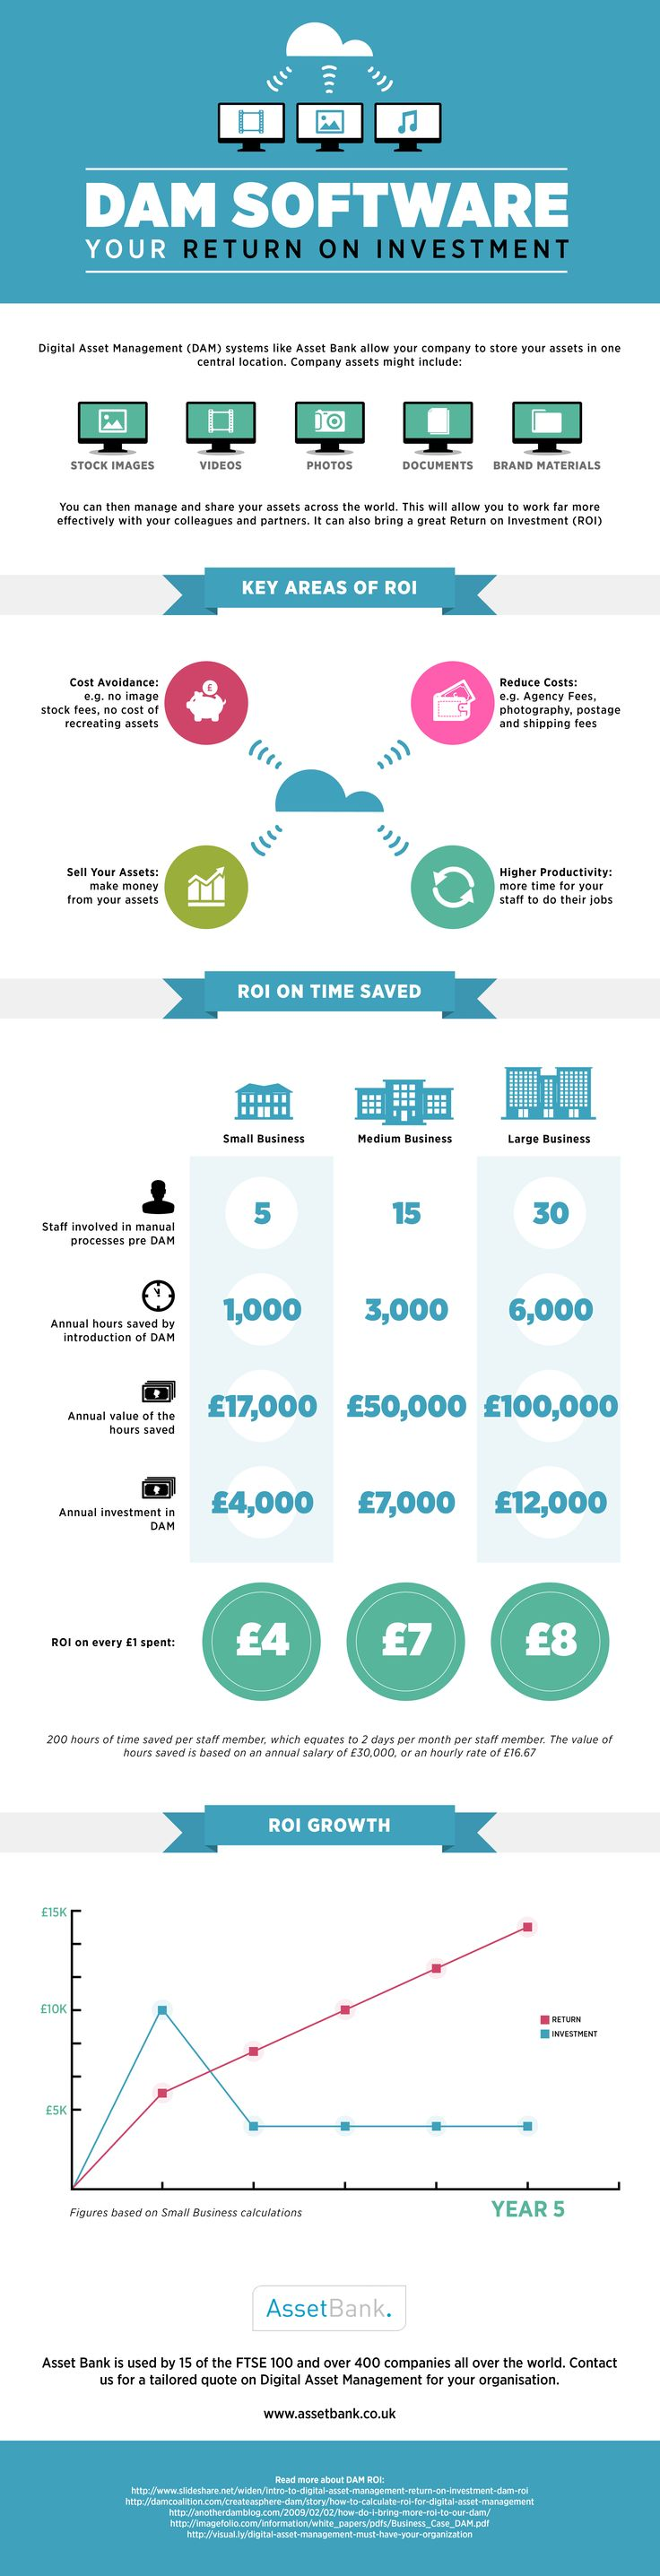 Digital Asset Management (DAM) Return on Investment (ROI) Infographic